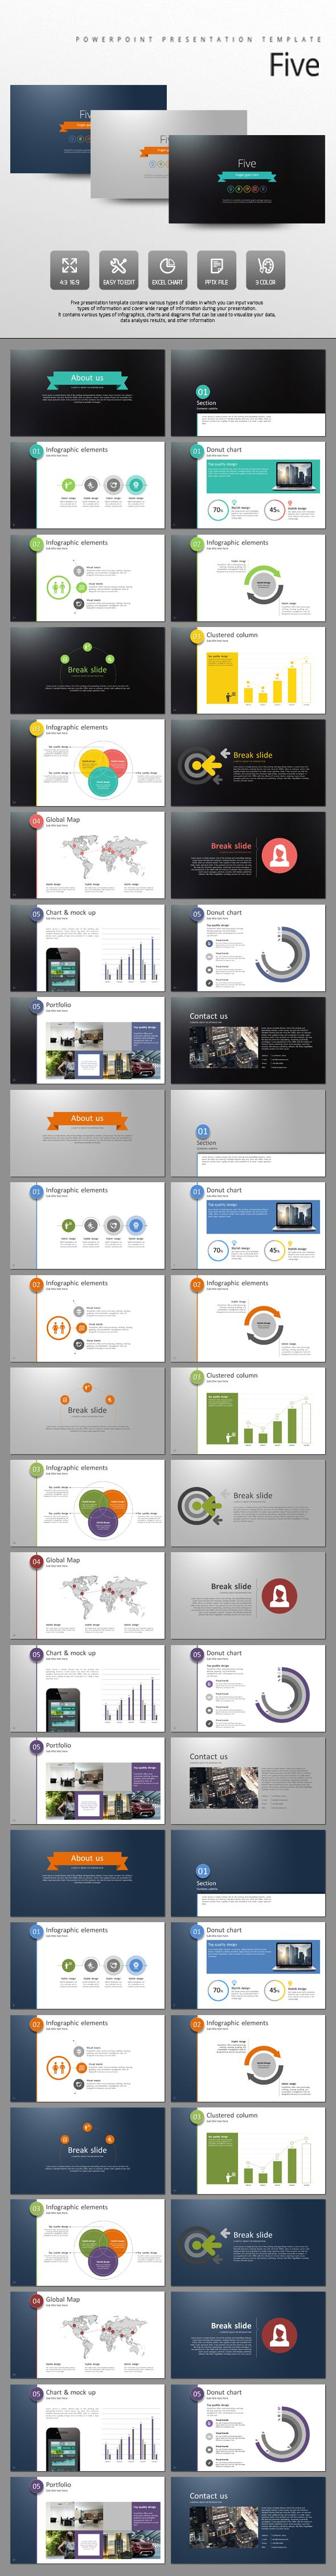 Five PowerPoint Template #design #slides Download: http://graphicriver.net/item/five/13105400?ref=ksioks